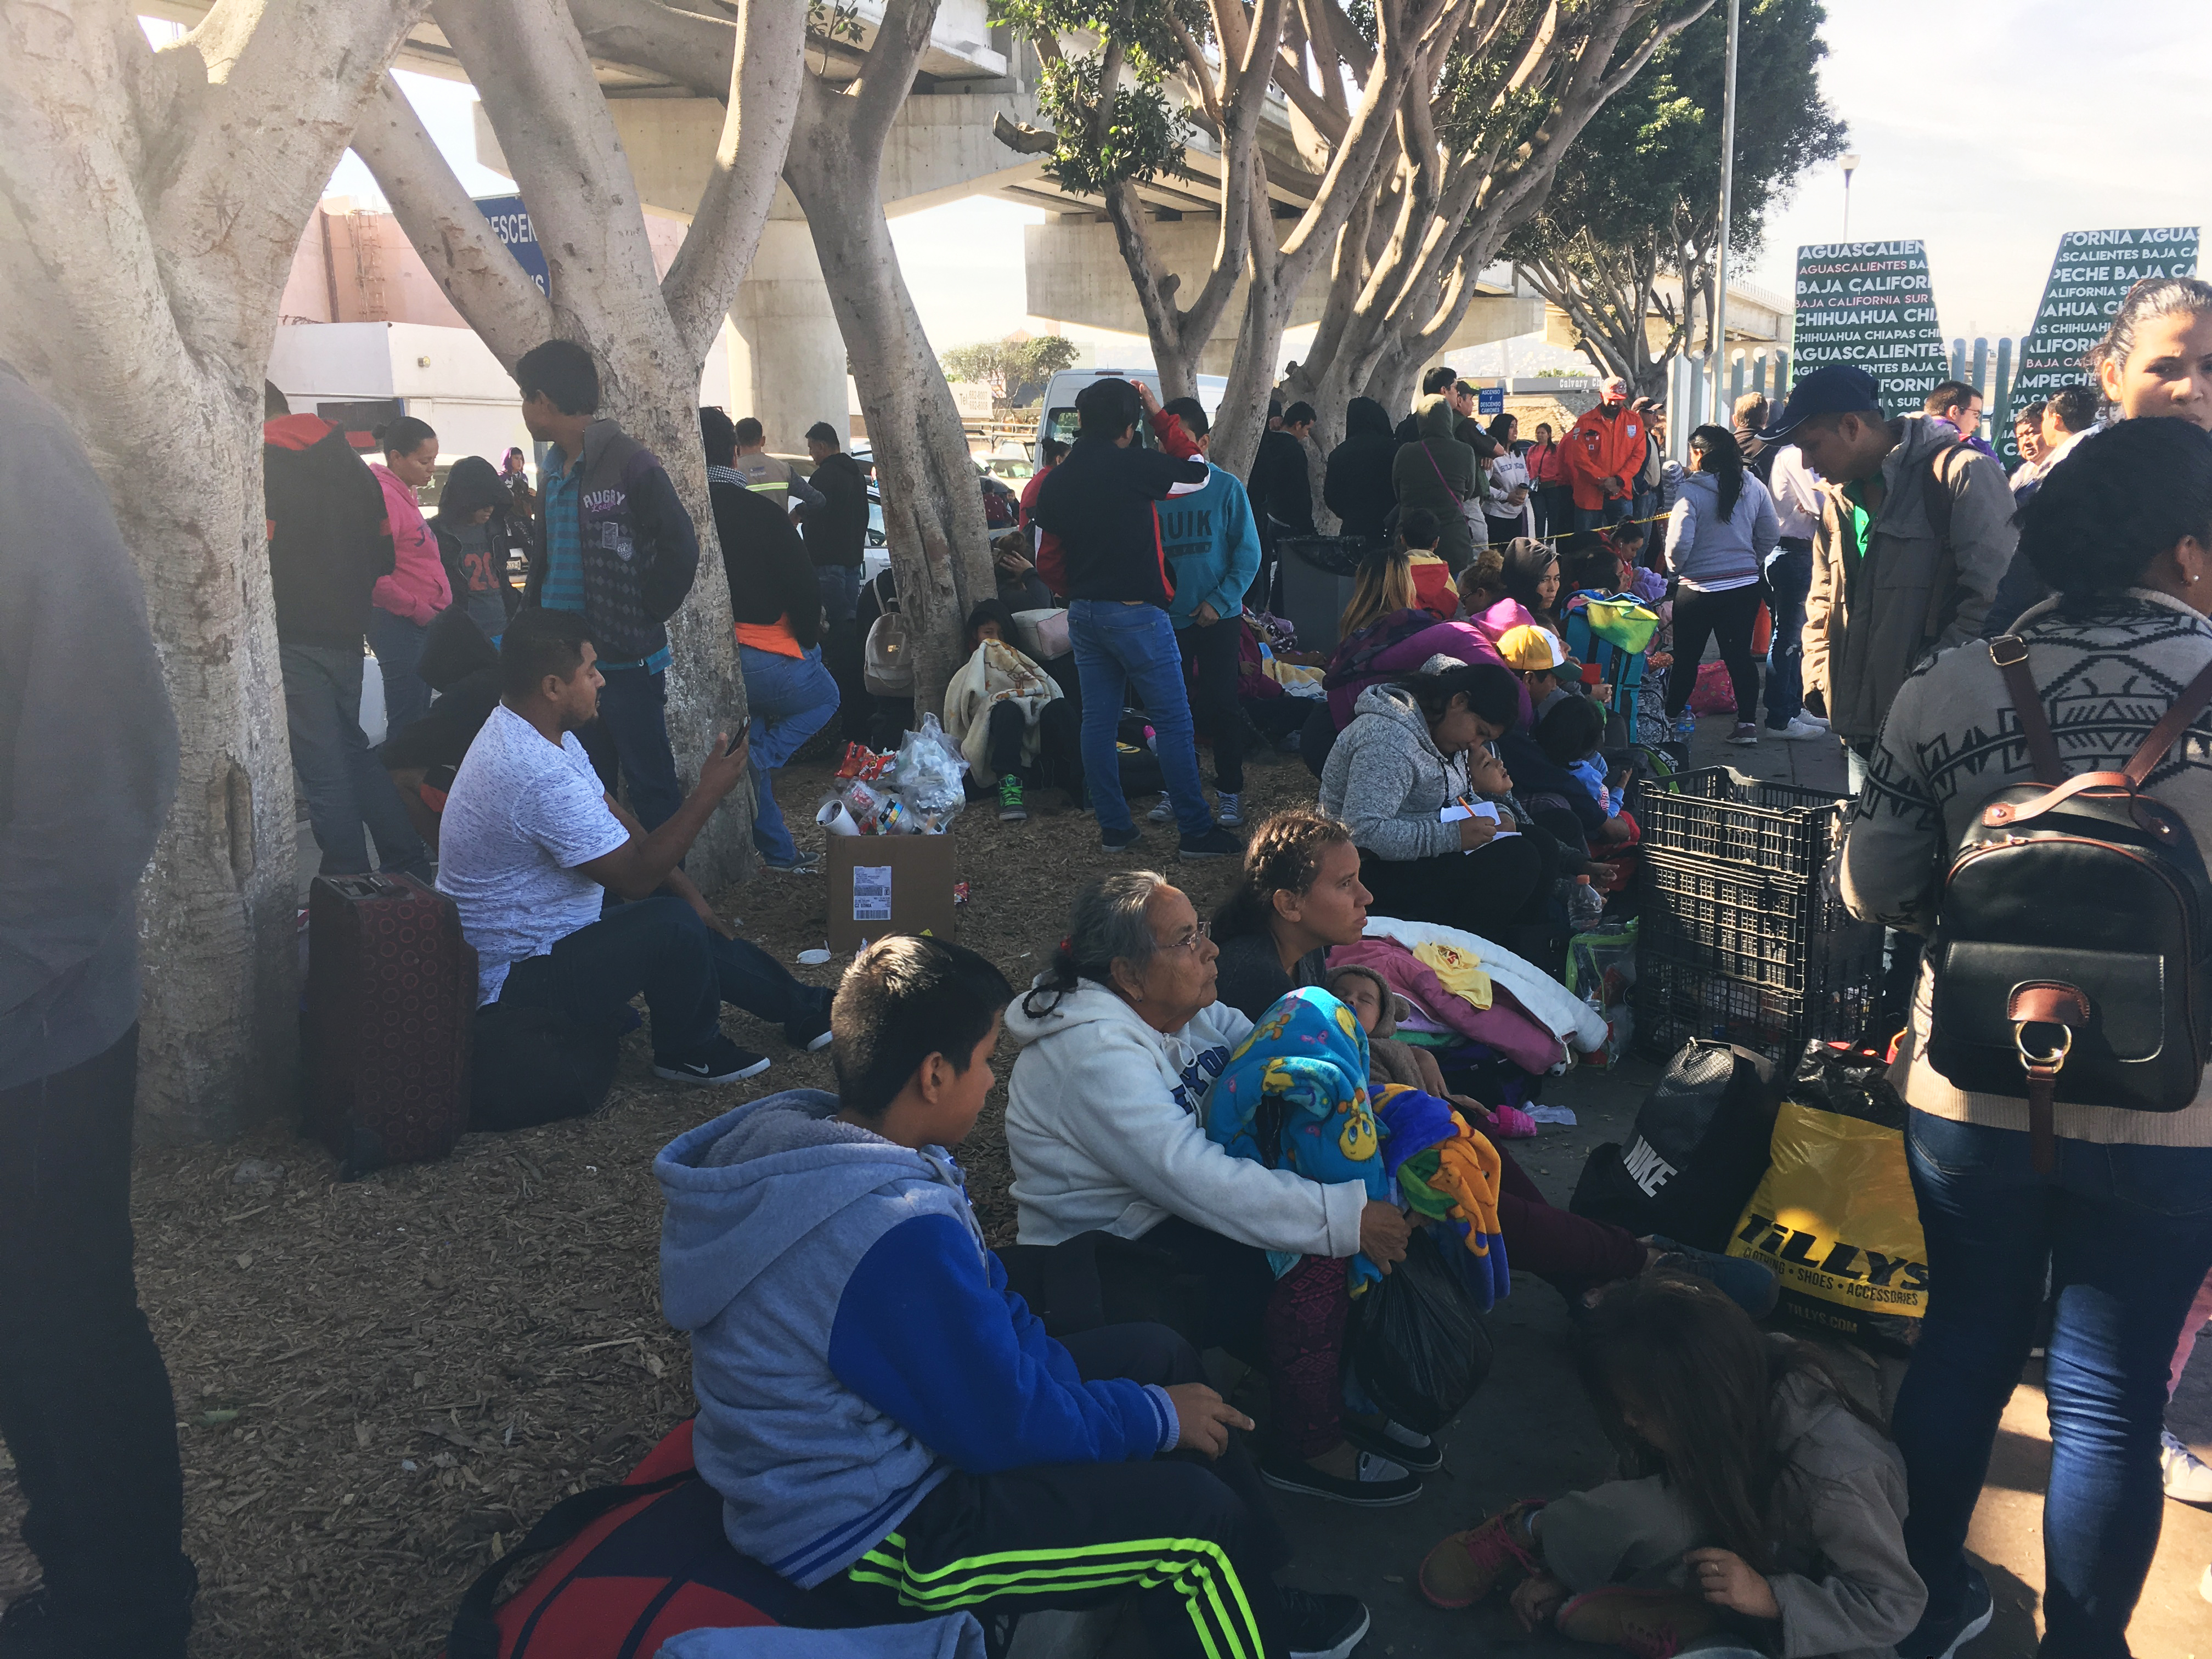 Families wait outside the port of entry to see where the are on the list, and when they can apply for asylum